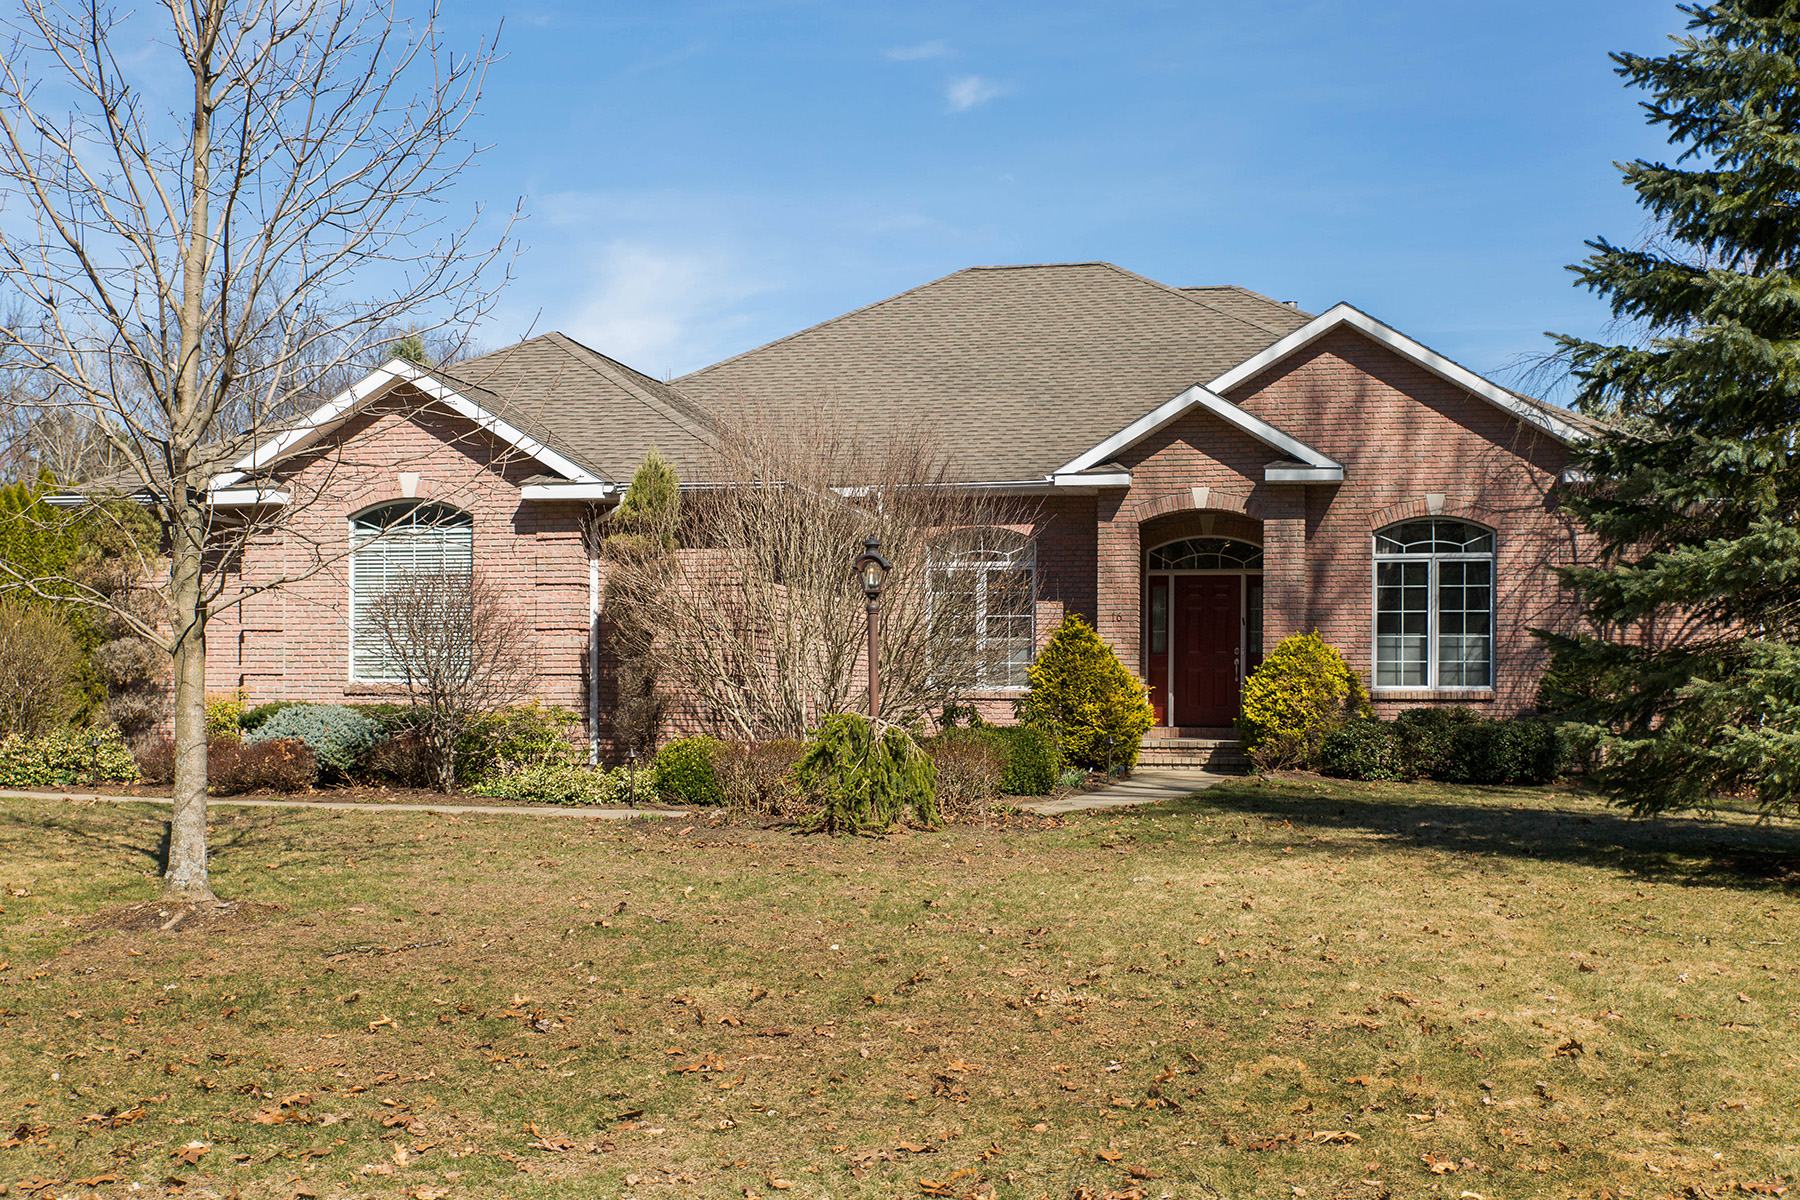 Single Family Home for Sale at Custom Ranch in Clifton Park 16 Siena Dr Clifton Park, New York 12065 United States